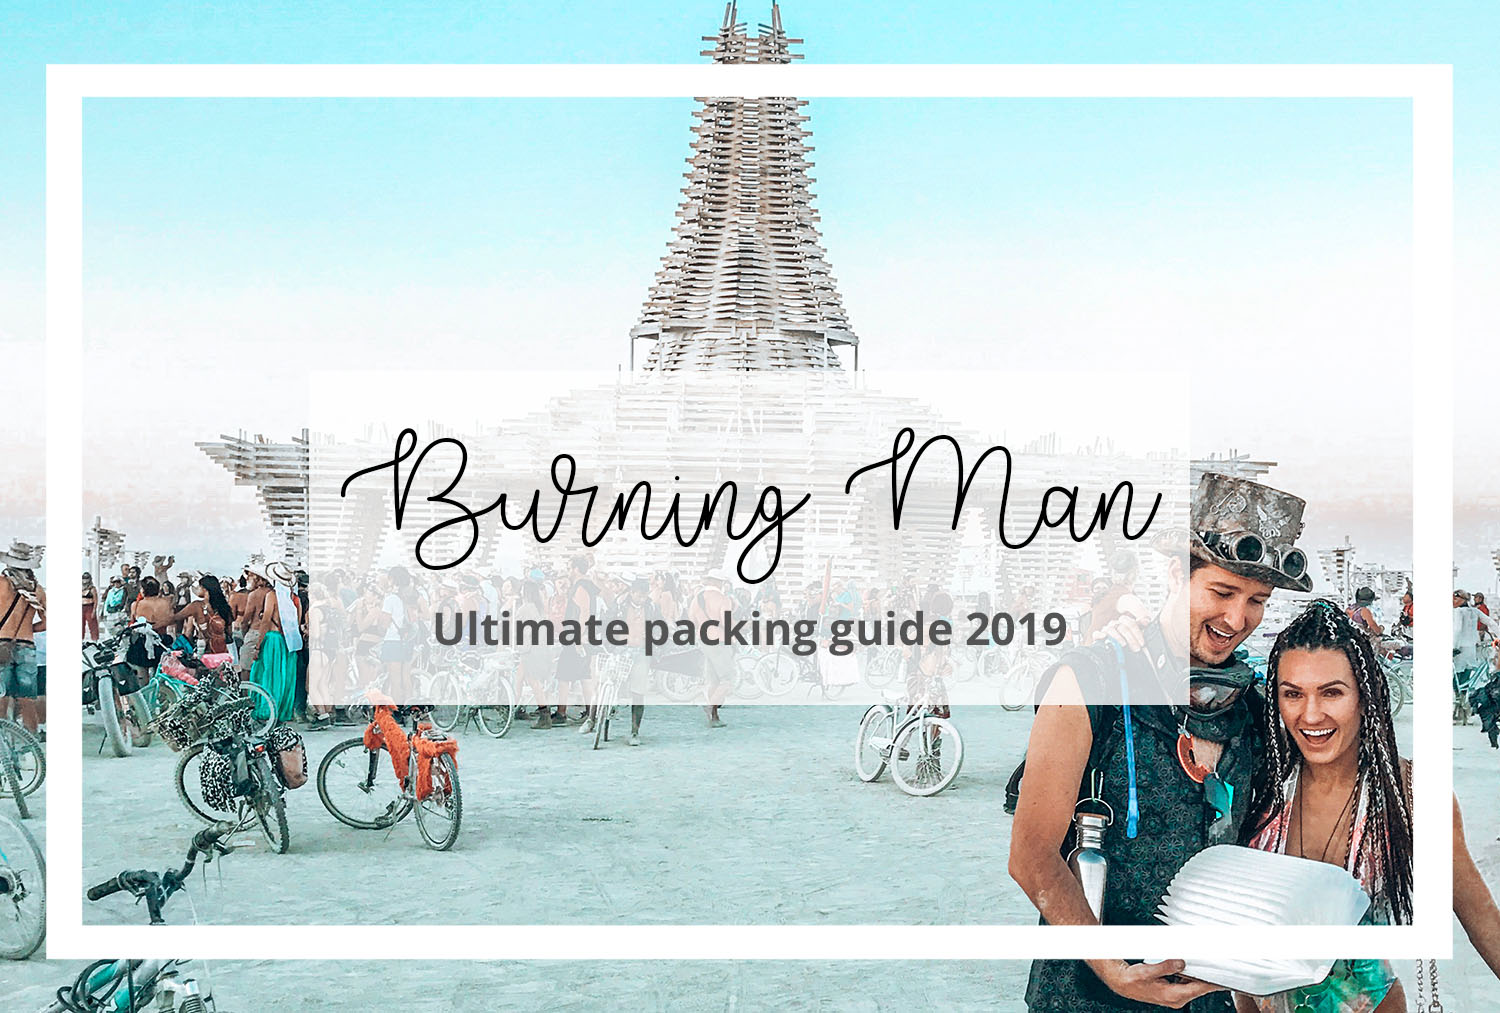 Burning Man Ultimate Packing Guide 2019